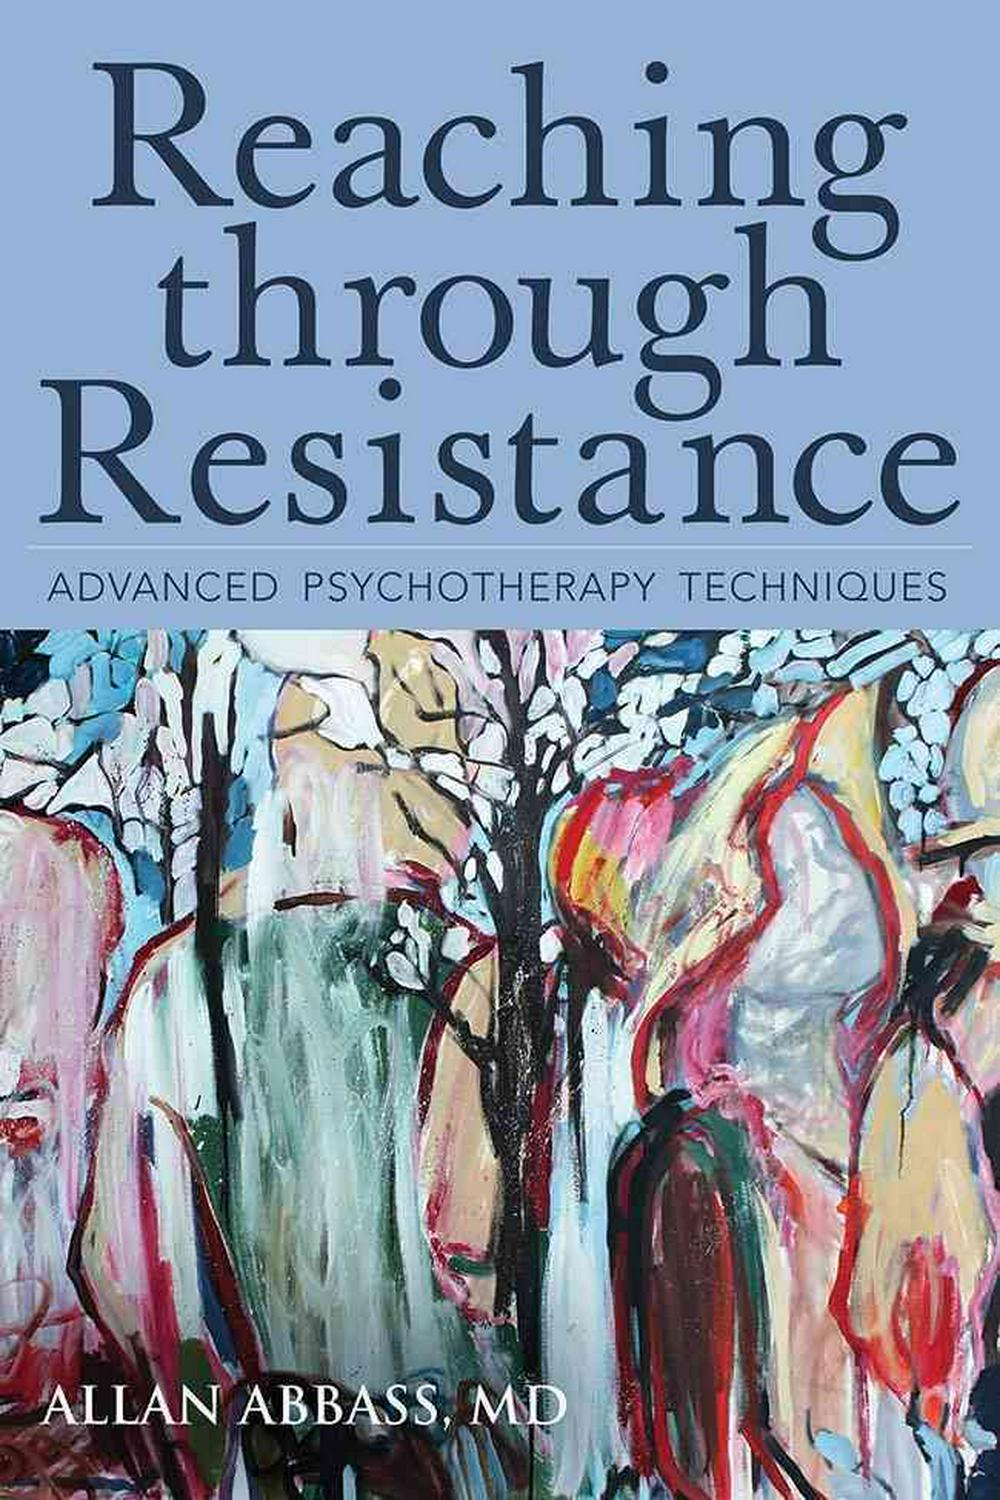 Reaching Through Resistance: Advanced Psychotherapy Techniques by Allan, MD Abbass, ISBN: 9780988378865